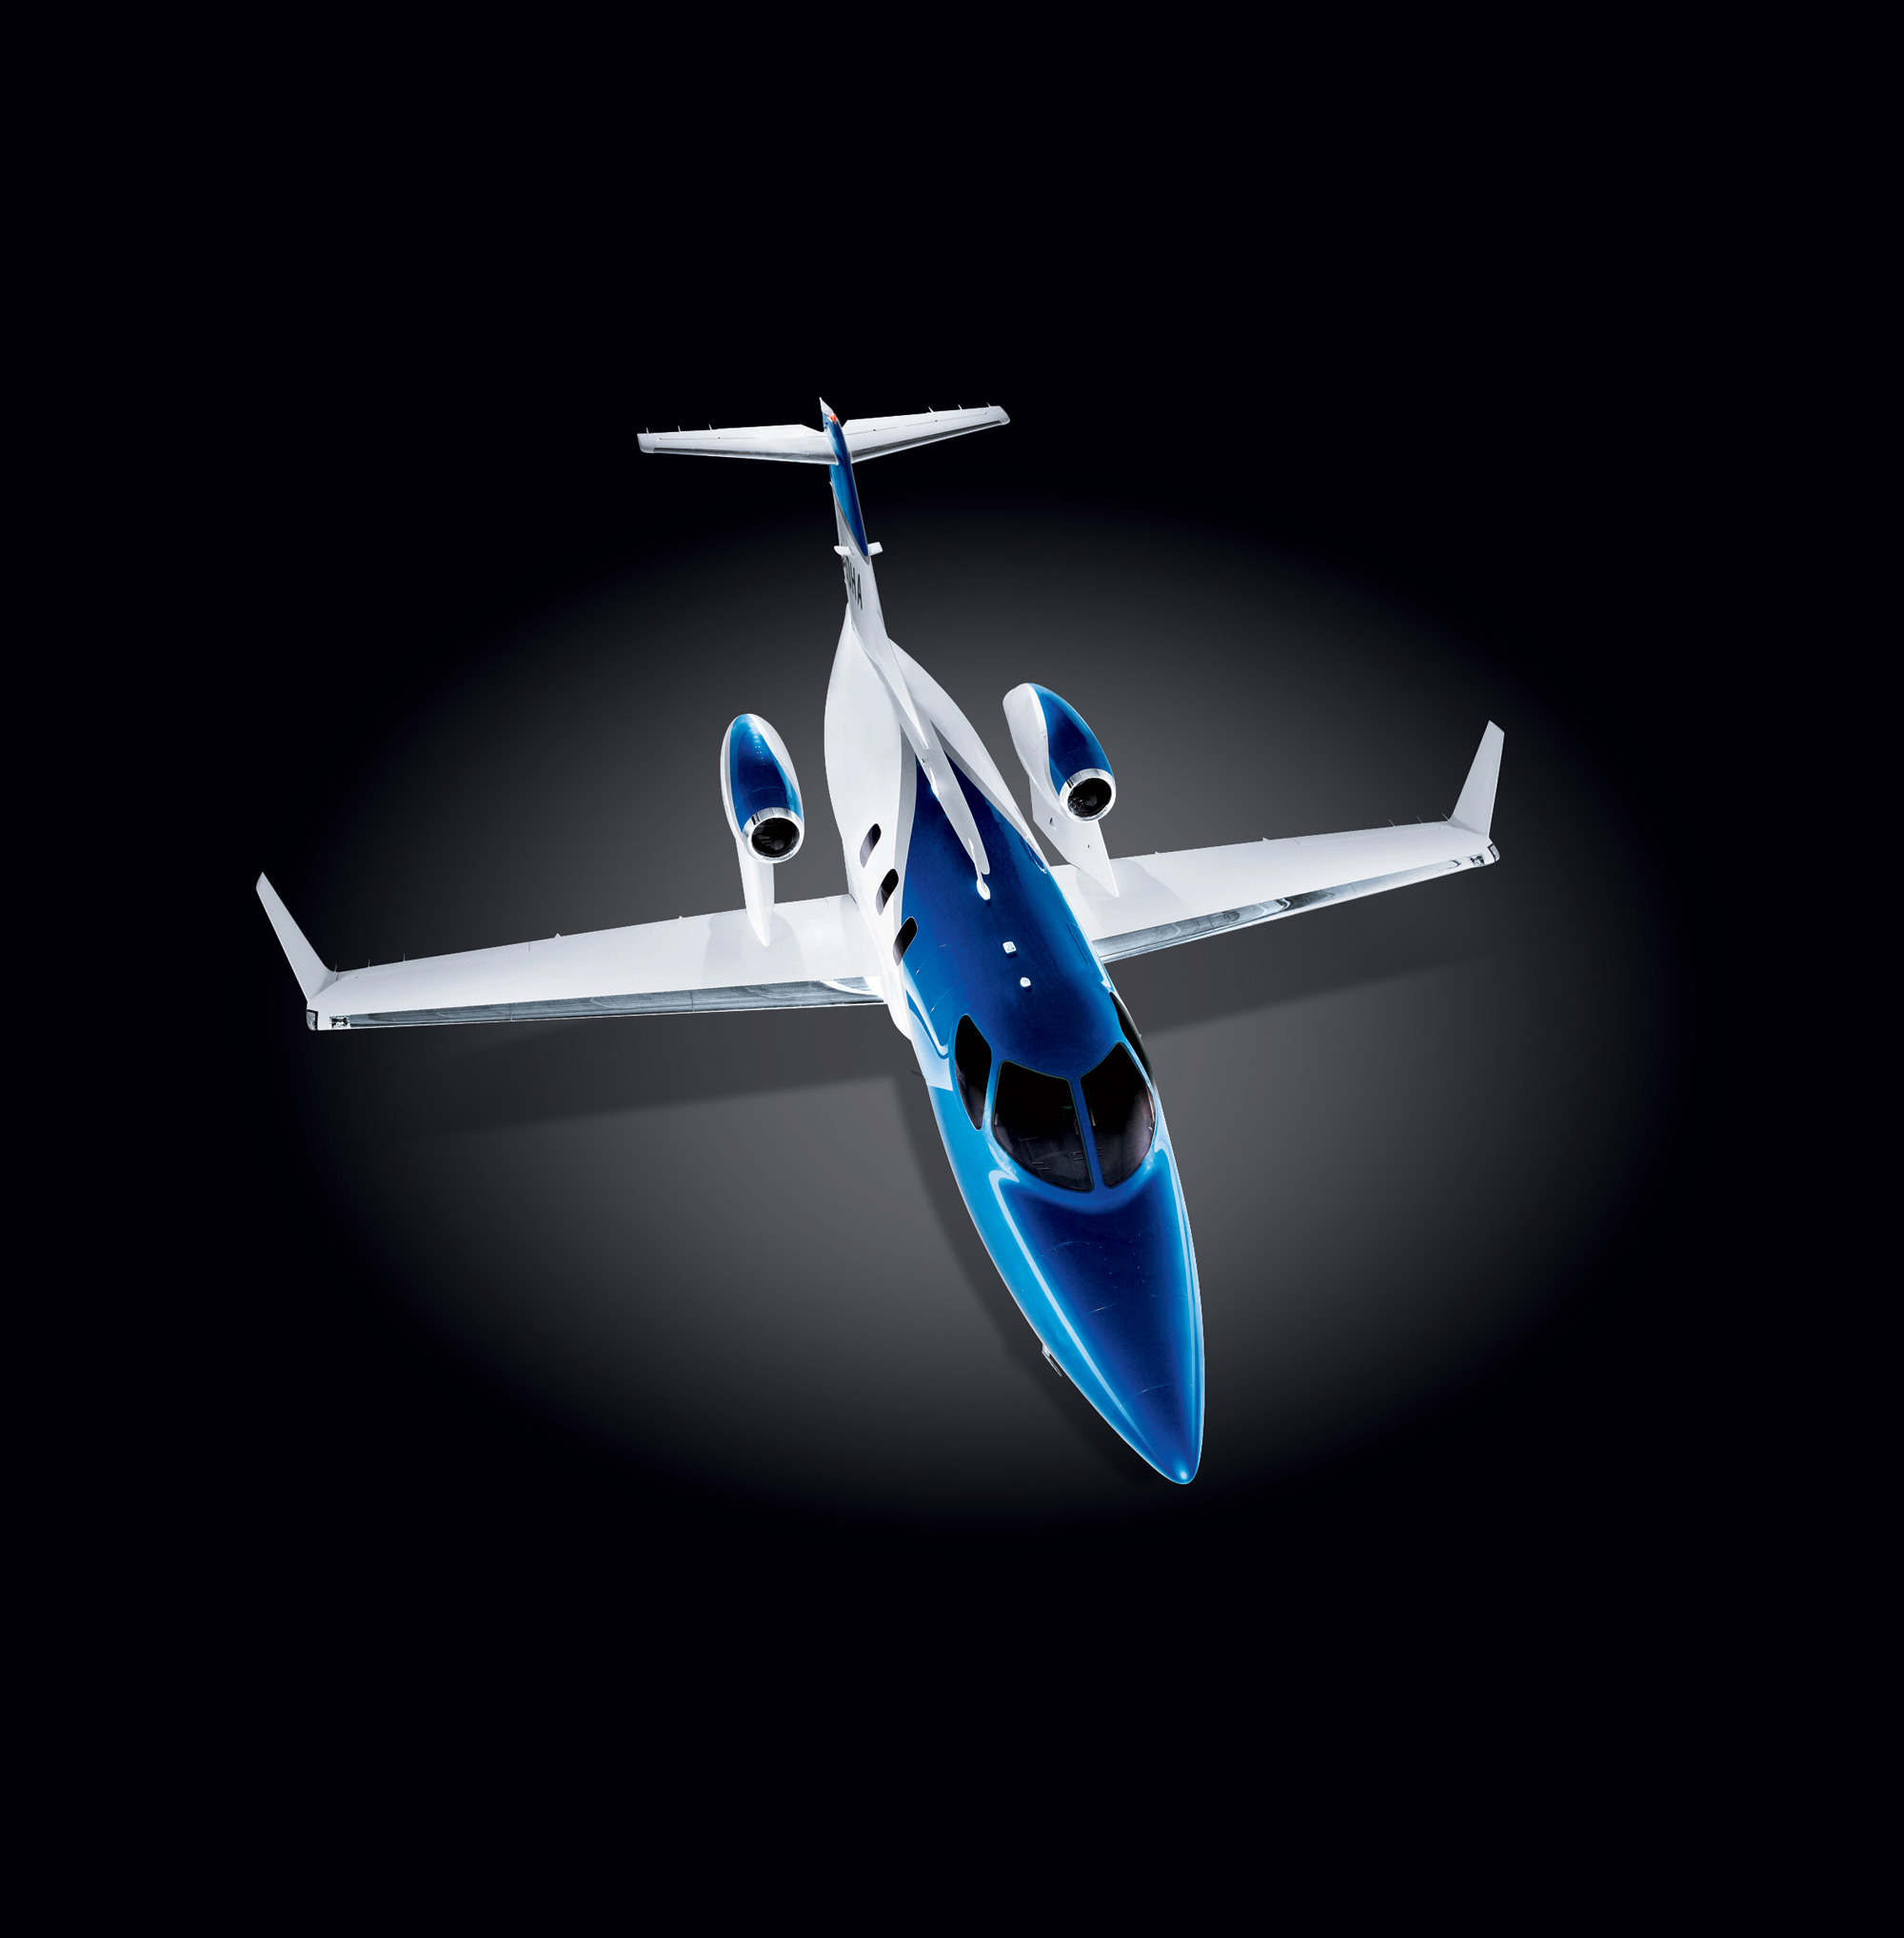 HondaJet - Honda's First Light Business Jet